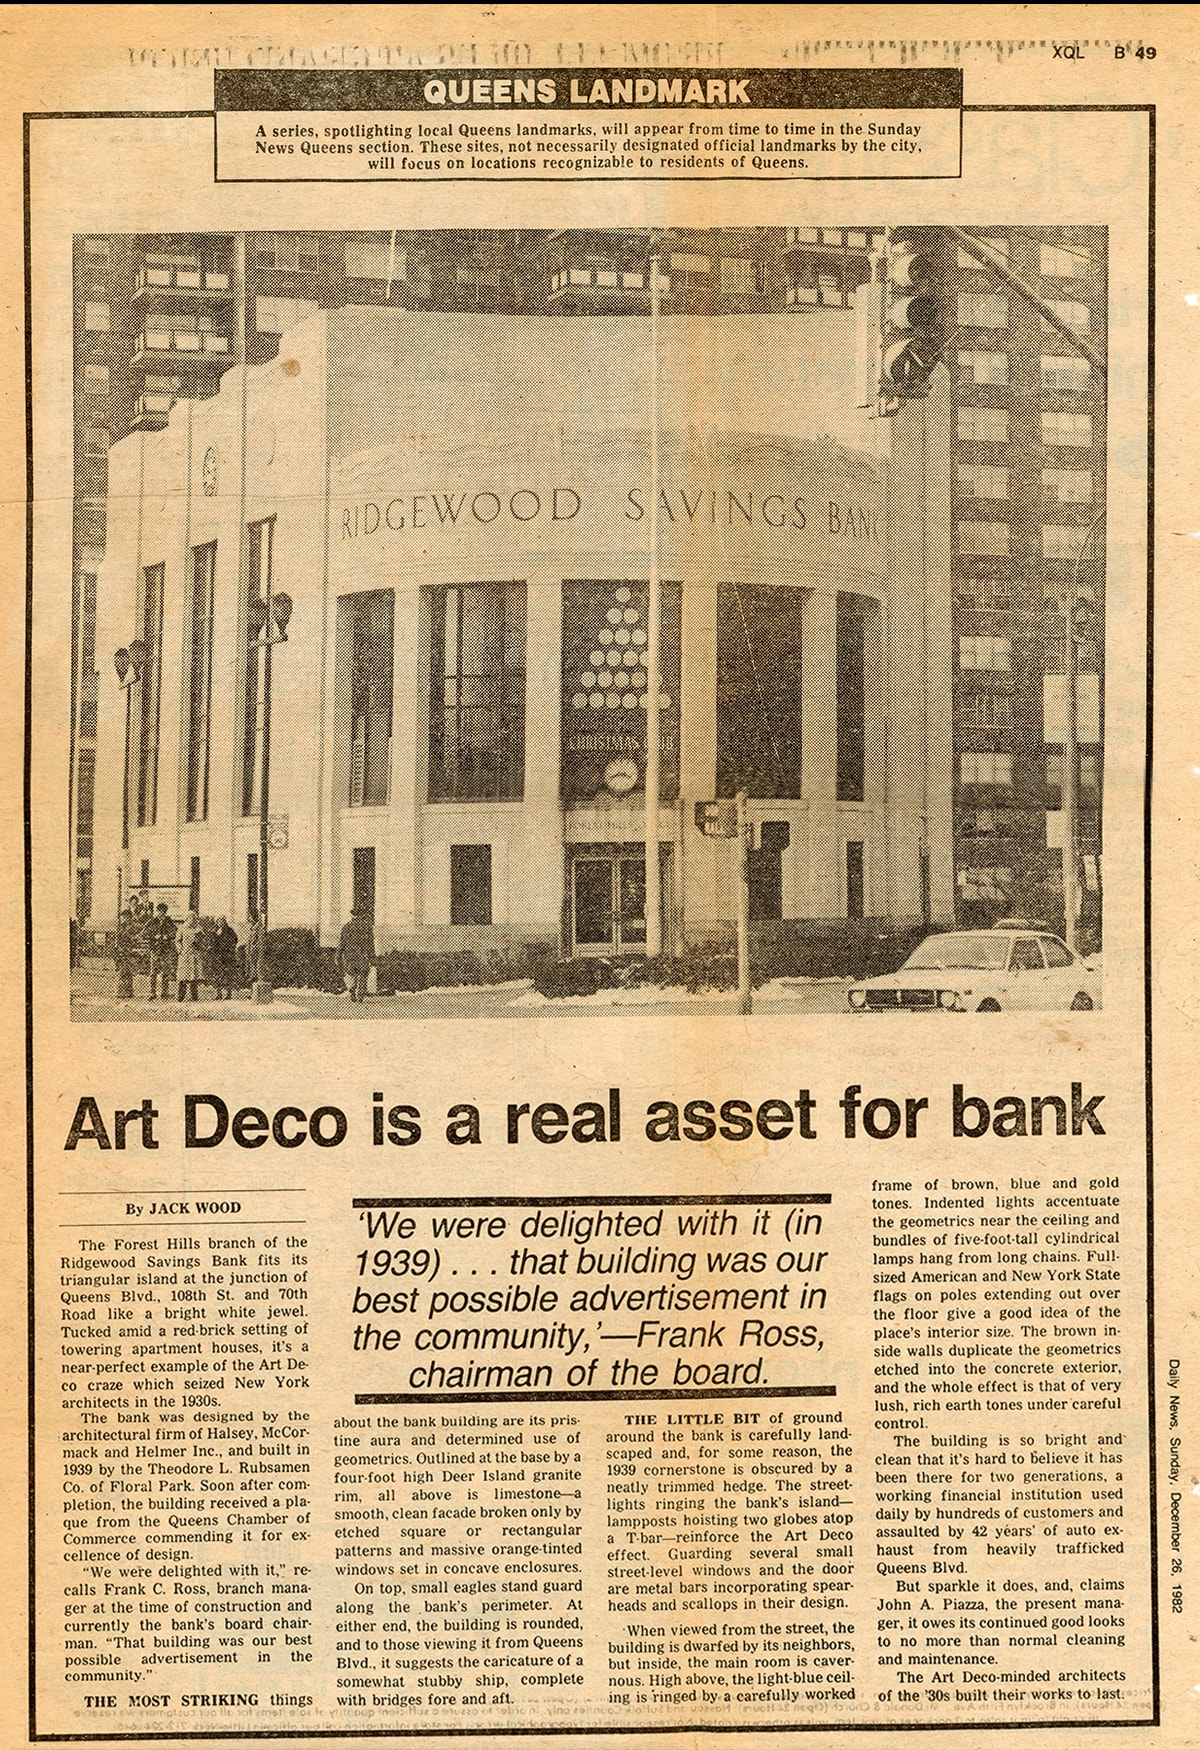 A newspaper clipping shows a photo of Ridgewood's Forest Hills location